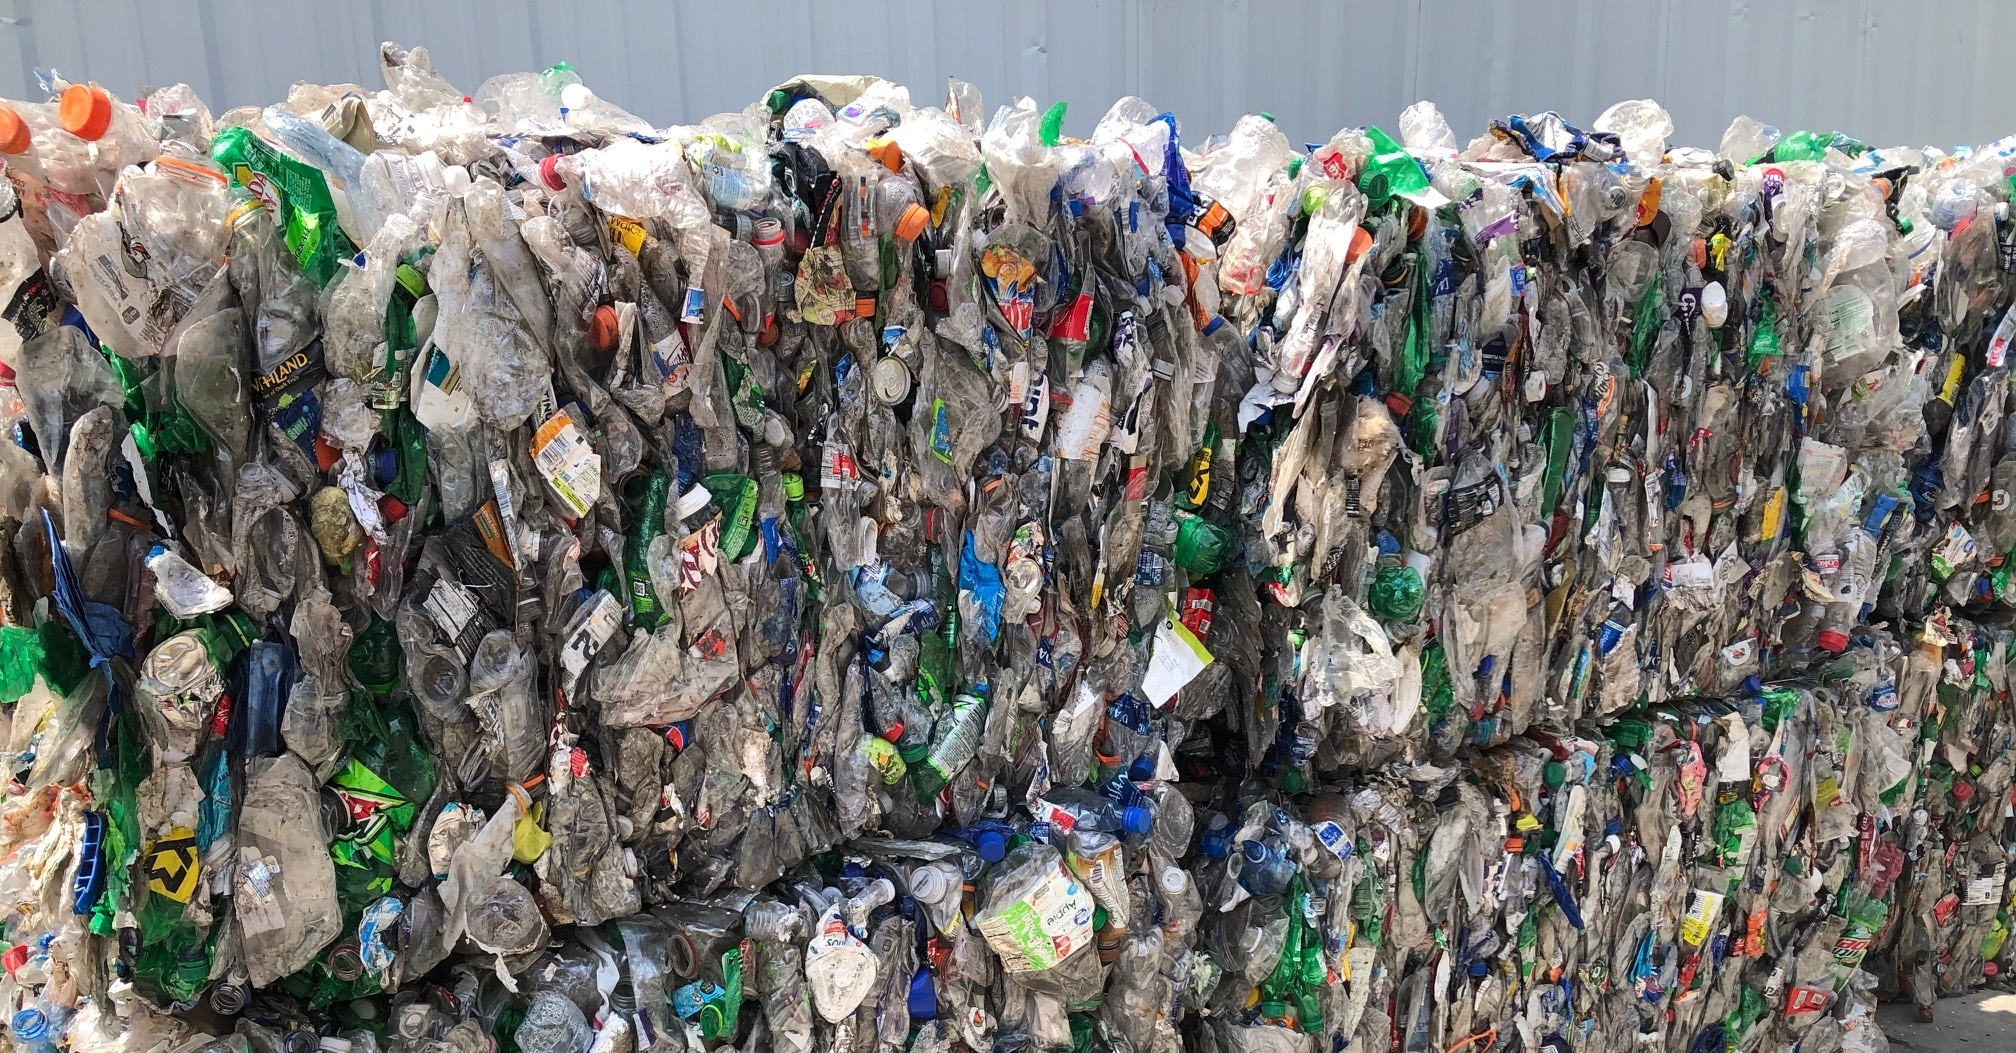 Birmingham is expanding curbside recycling in July